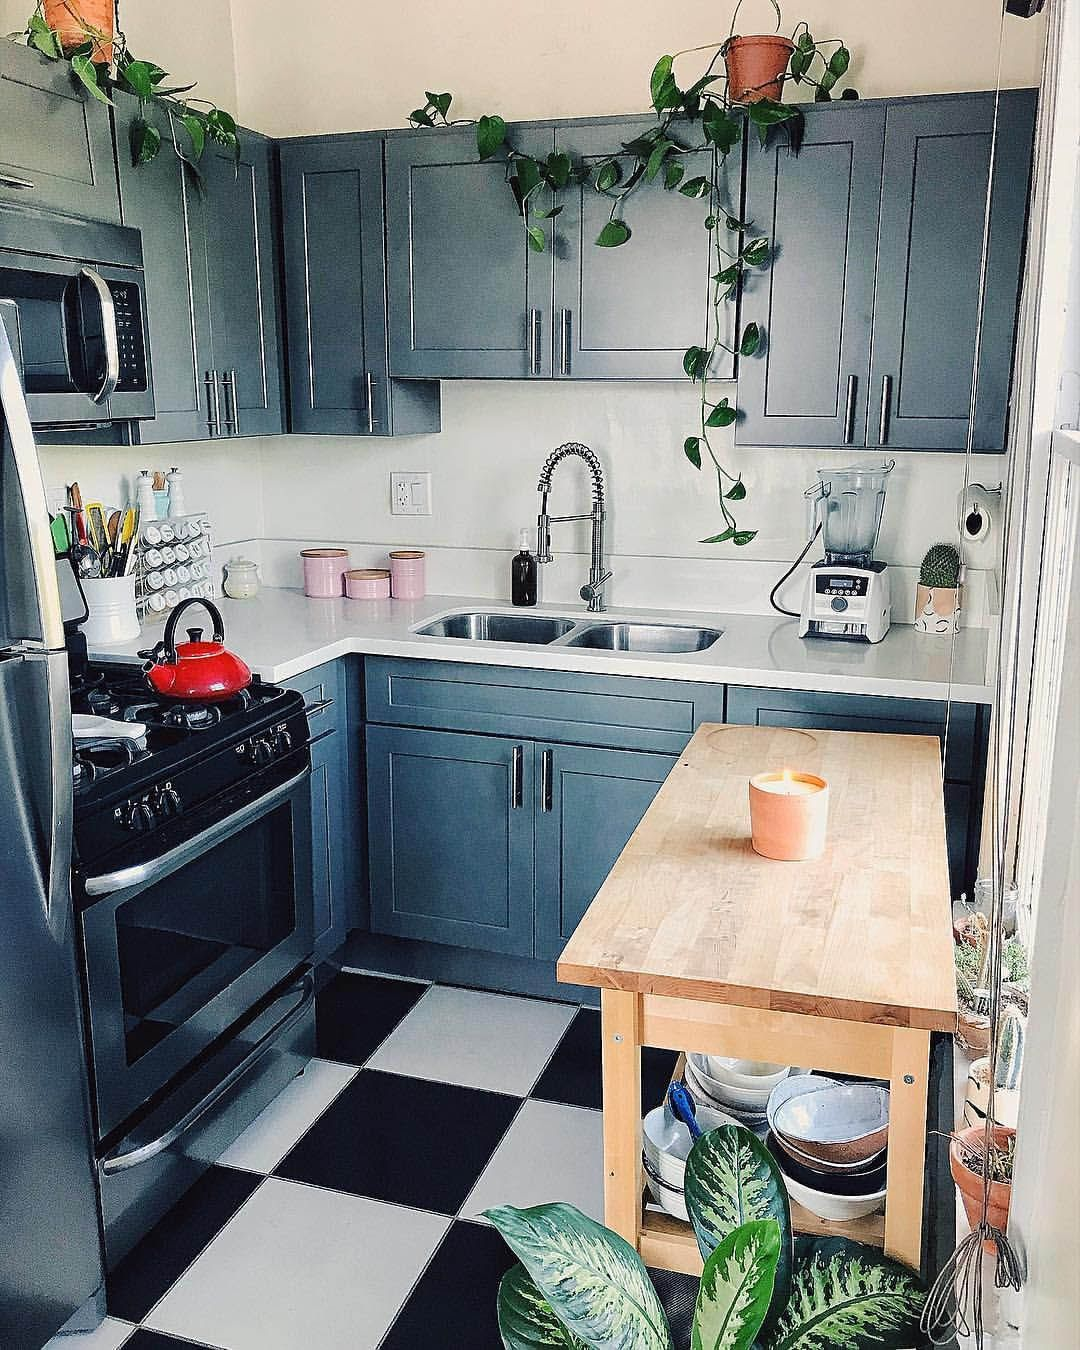 8 small kitchen table ideas for your home with images kitchen design decor quirky kitchen on kitchen ideas quirky id=45888